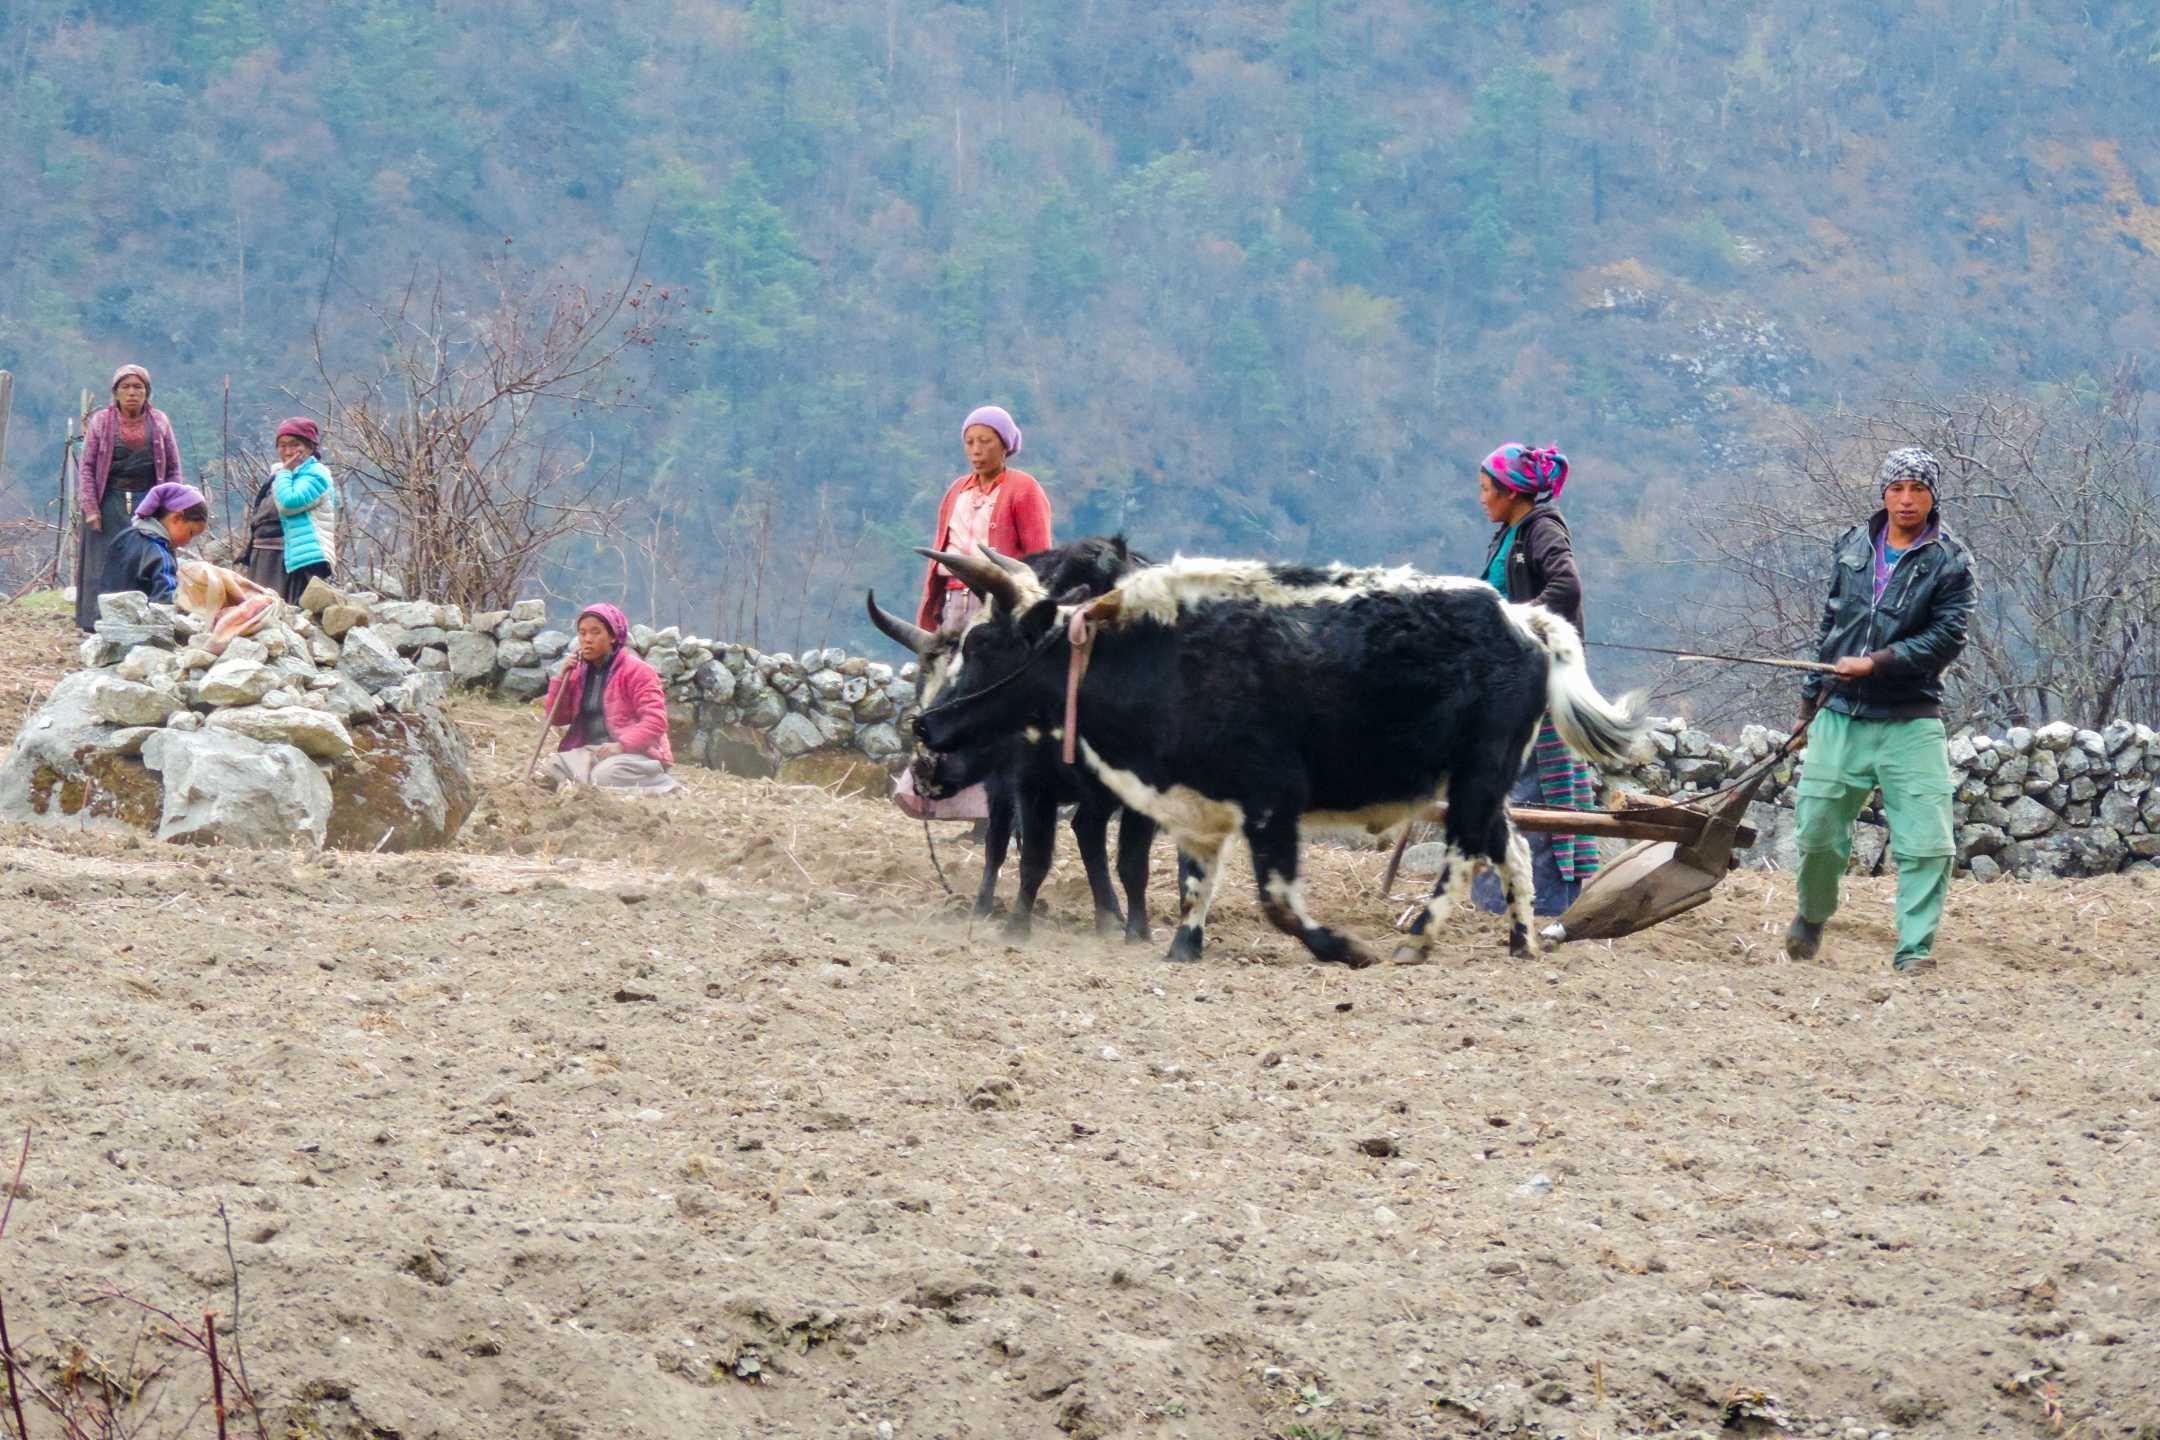 Local people in the Tamang region